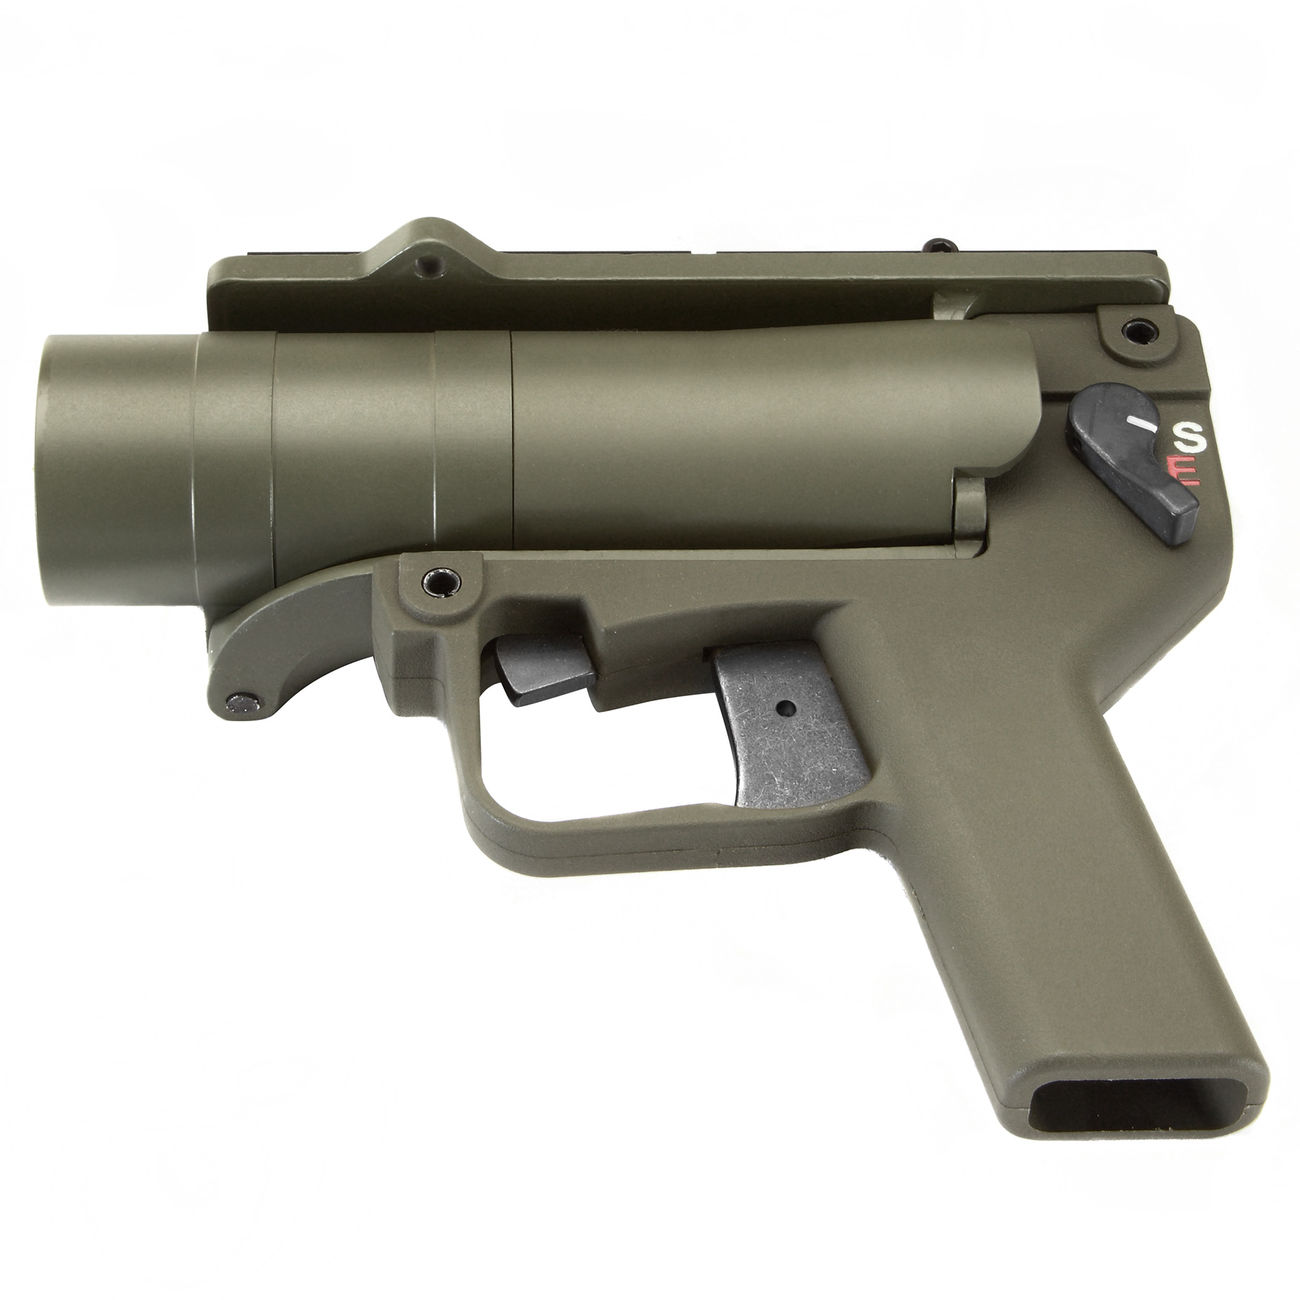 Mad Bull AGX 40mm Vollmetall Airsoft Pistolen-Launcher oliv 4